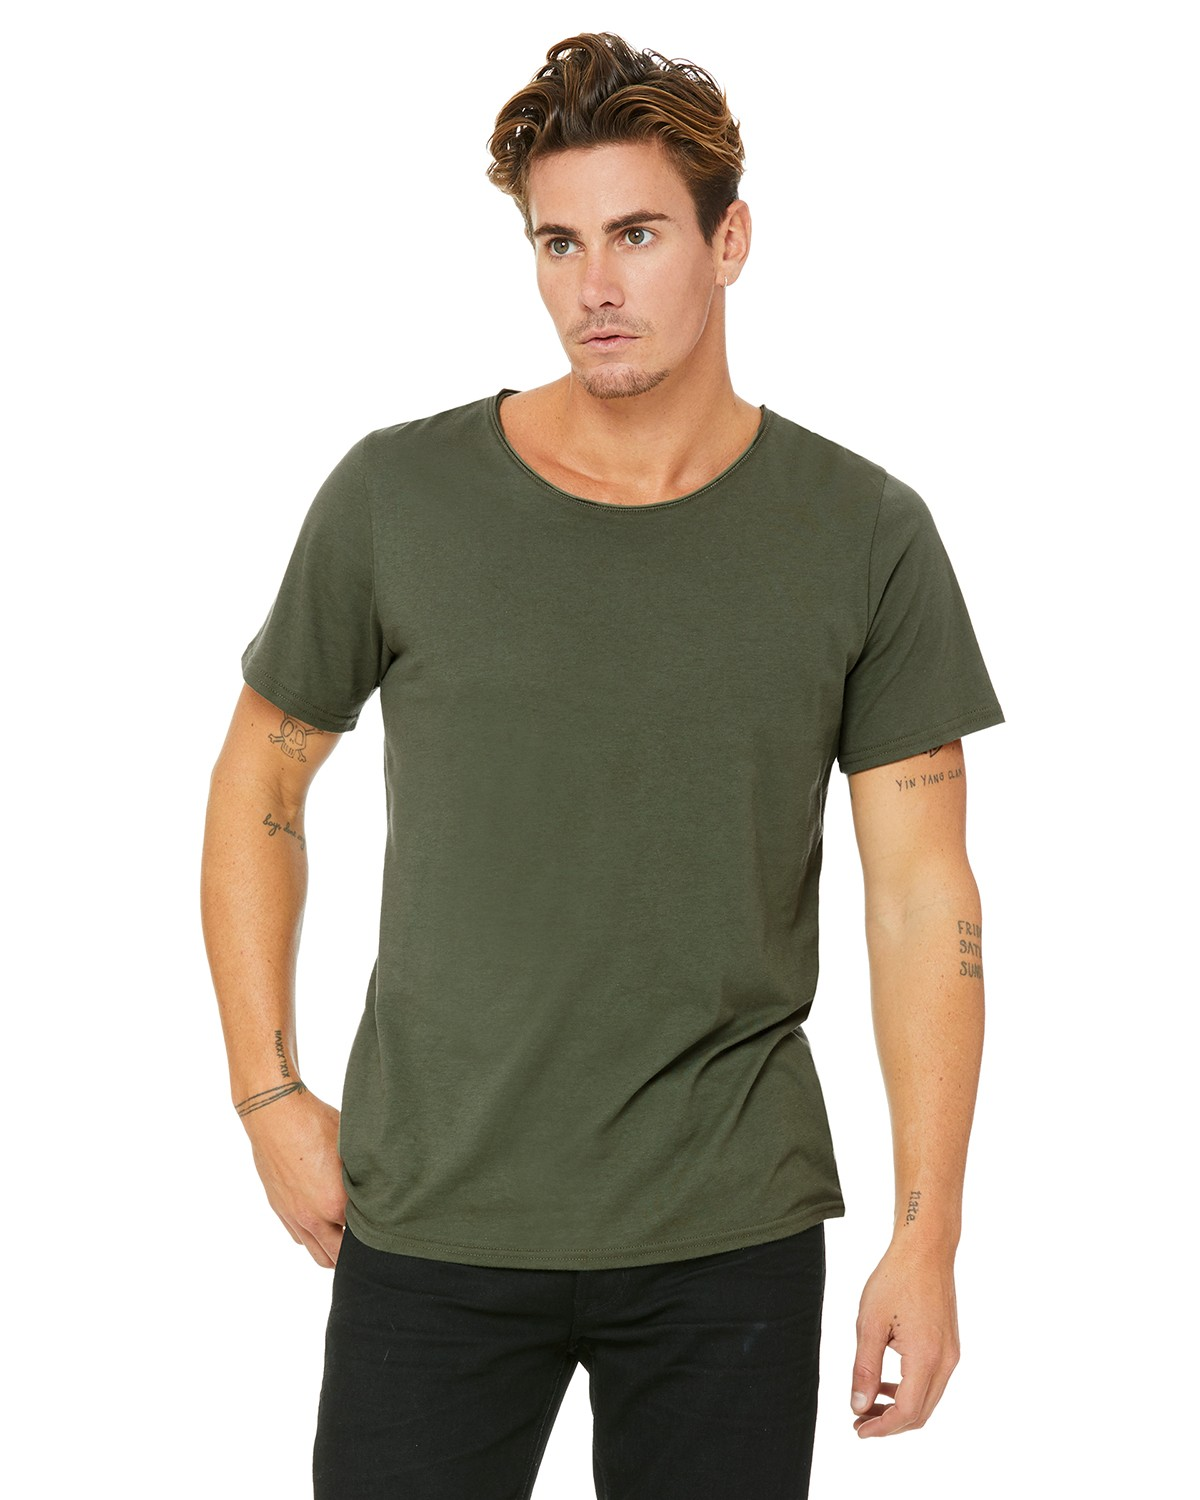 B3014 Bella + Canvas MILITARY GREEN